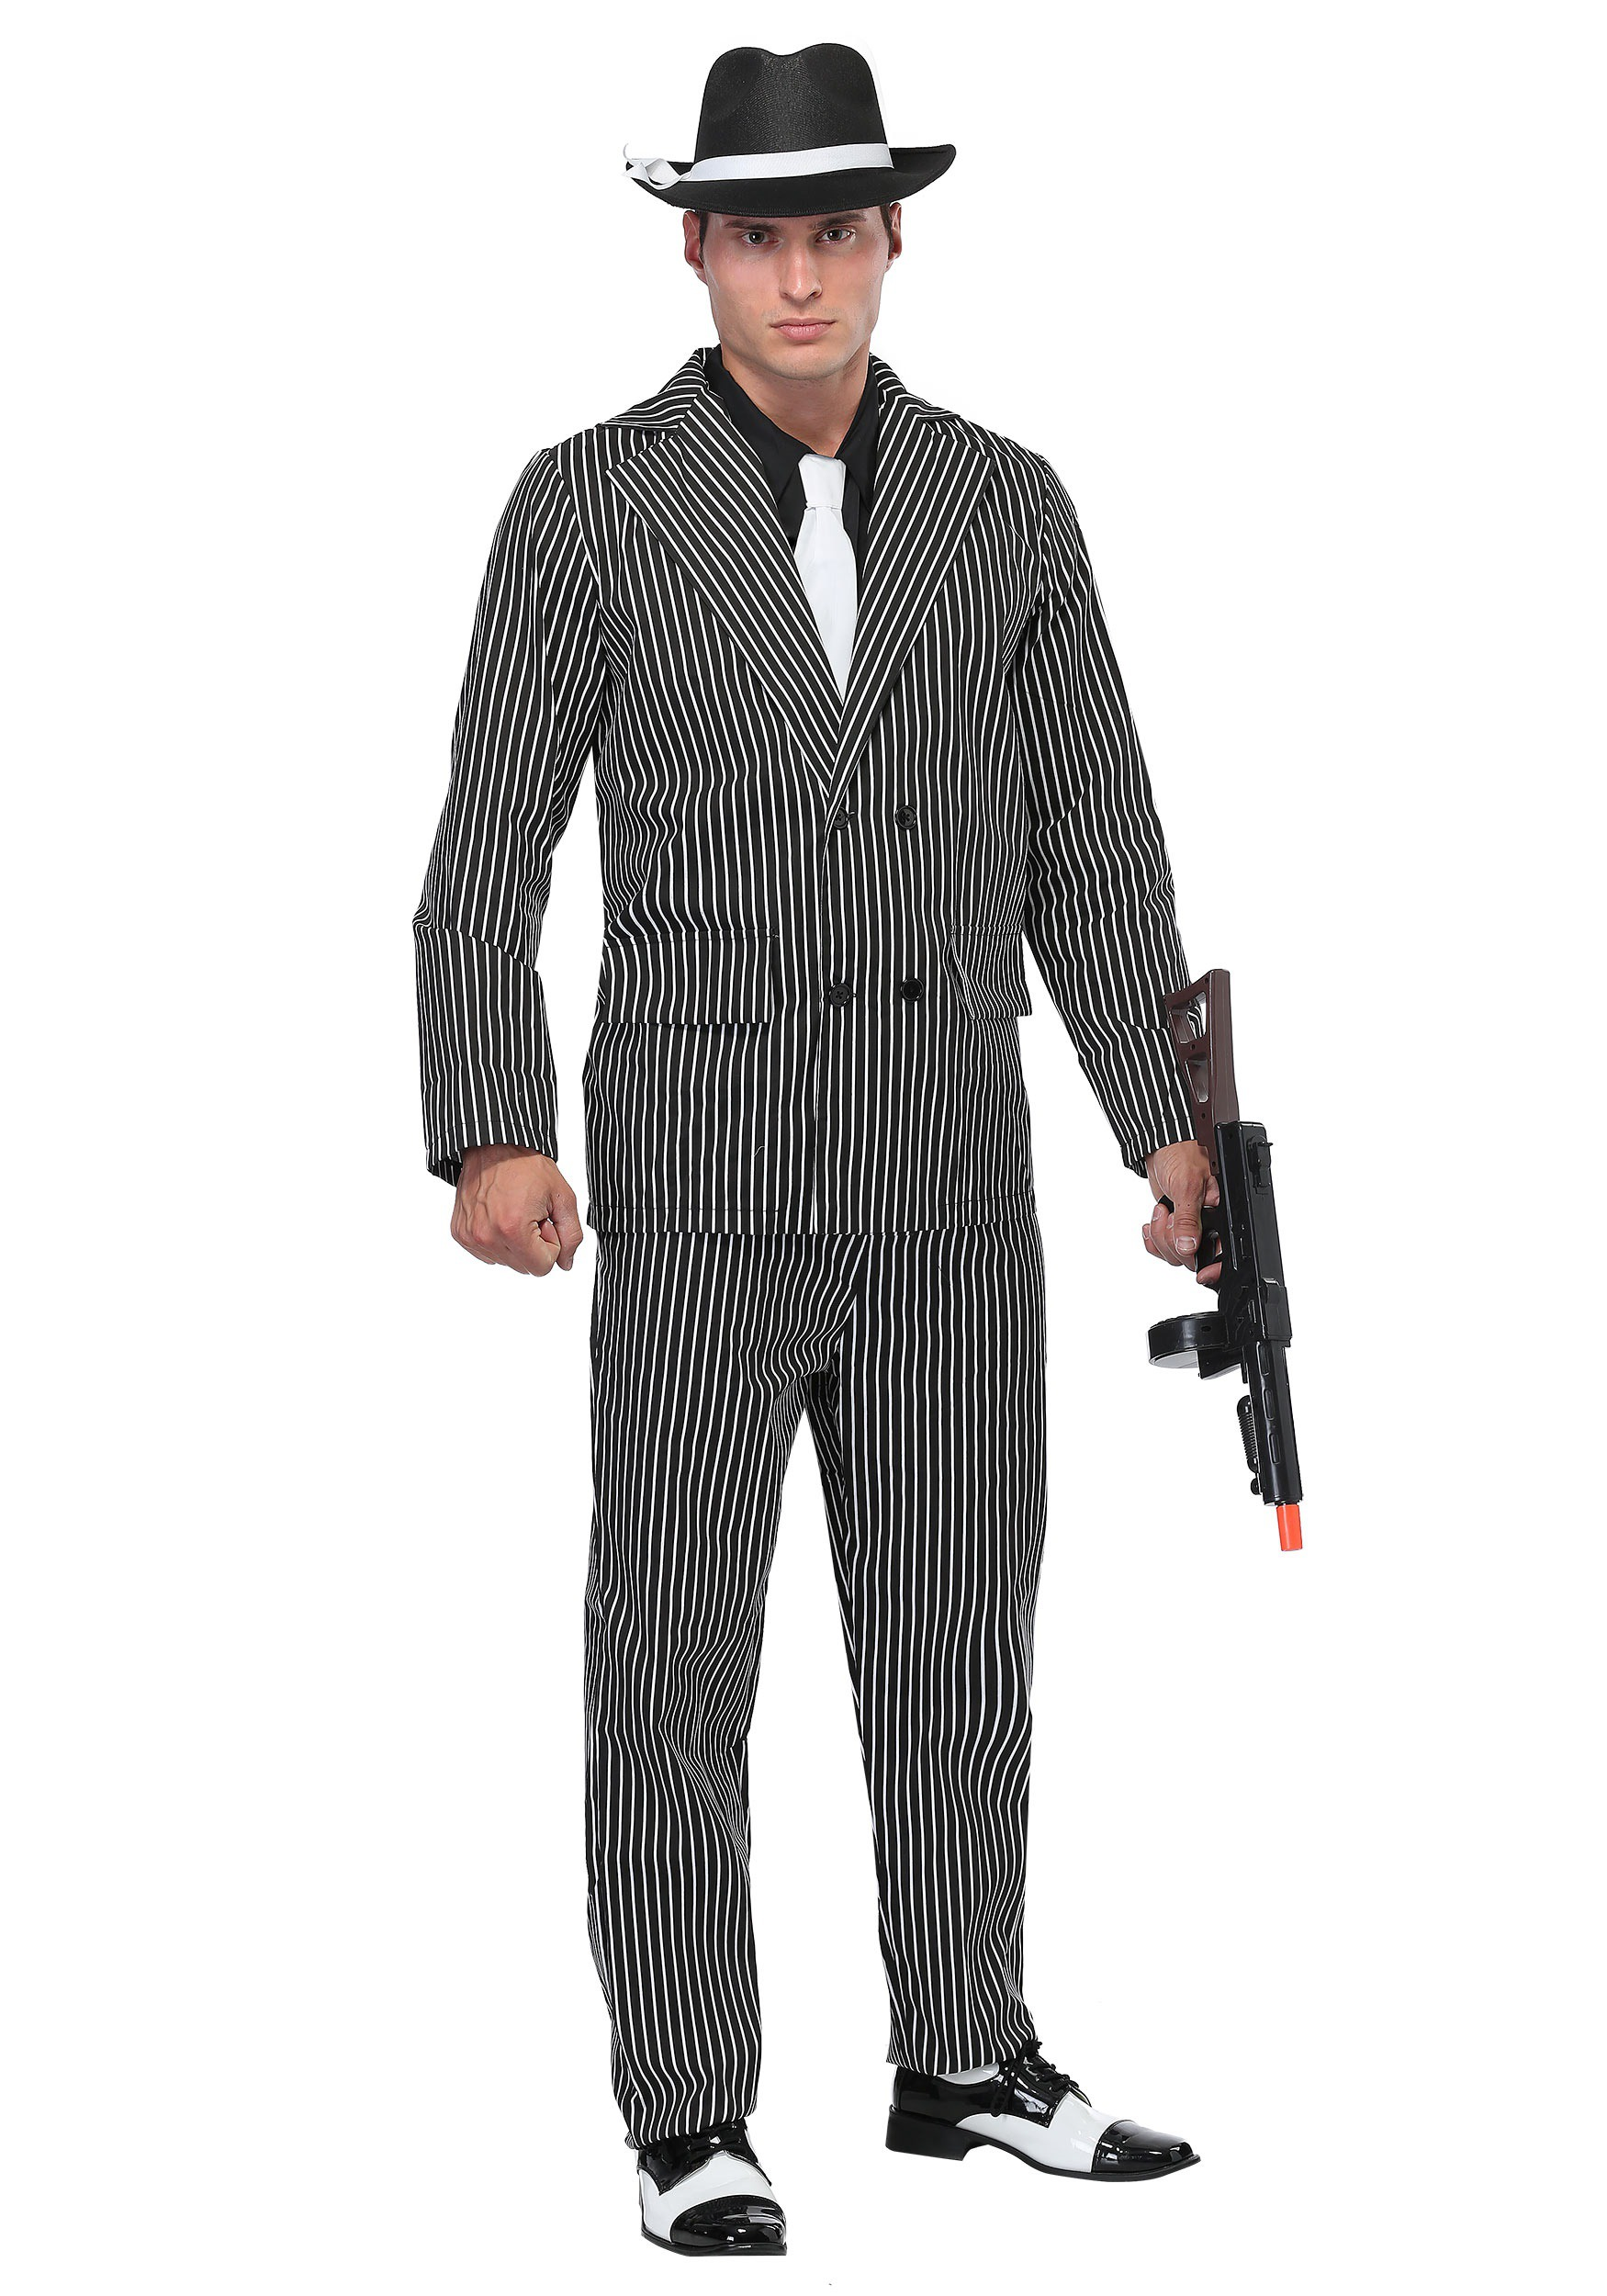 gangster costumes - adult, kids 1920's halloween gangster costume